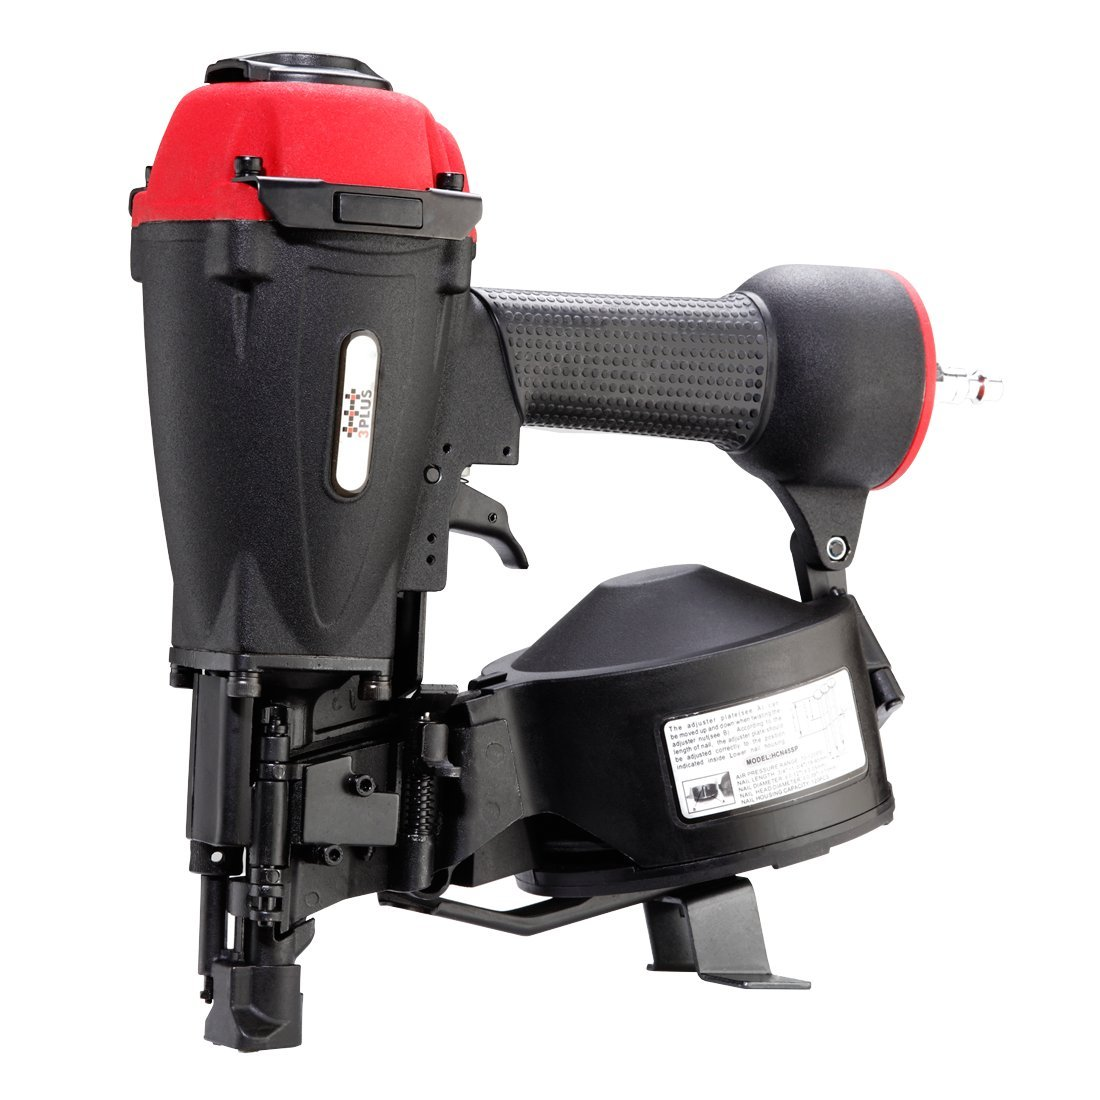 """3PLUS HCN45SP 11 Gauge 15 Degree 3/4"""" to 1-3/4"""" Coil Roofing Nailer"""